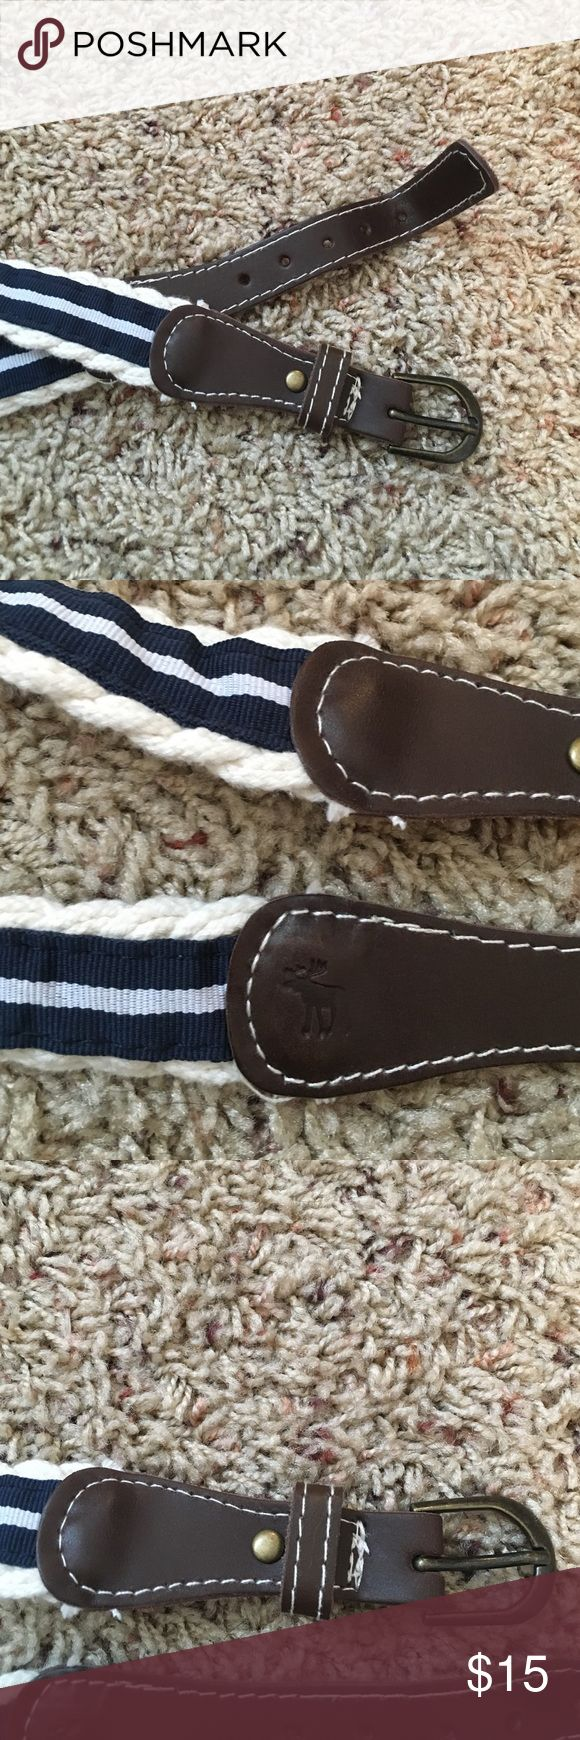 Abercrombie and Fitch brand belt Never before worn, like new condition, fabric belt. Blue, white and brown. Should fit size 4. Abercrombie & Fitch Accessories Belts